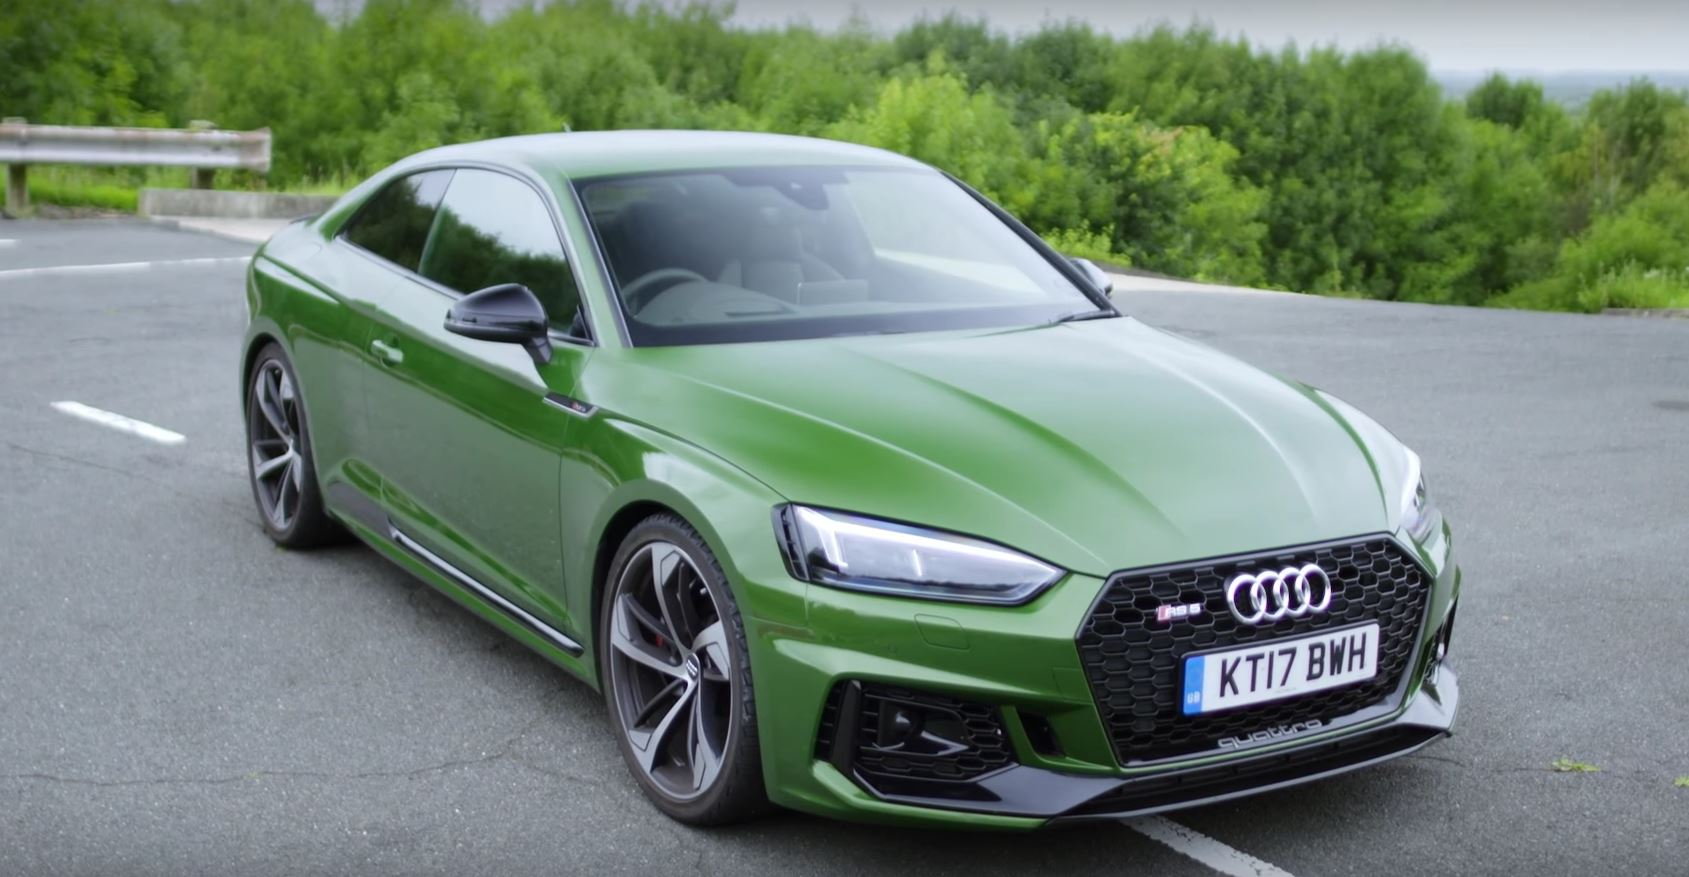 This 2018 Audi Rs5 Vs Mercedes Amg C63 Coupe Comparison Has Awesome